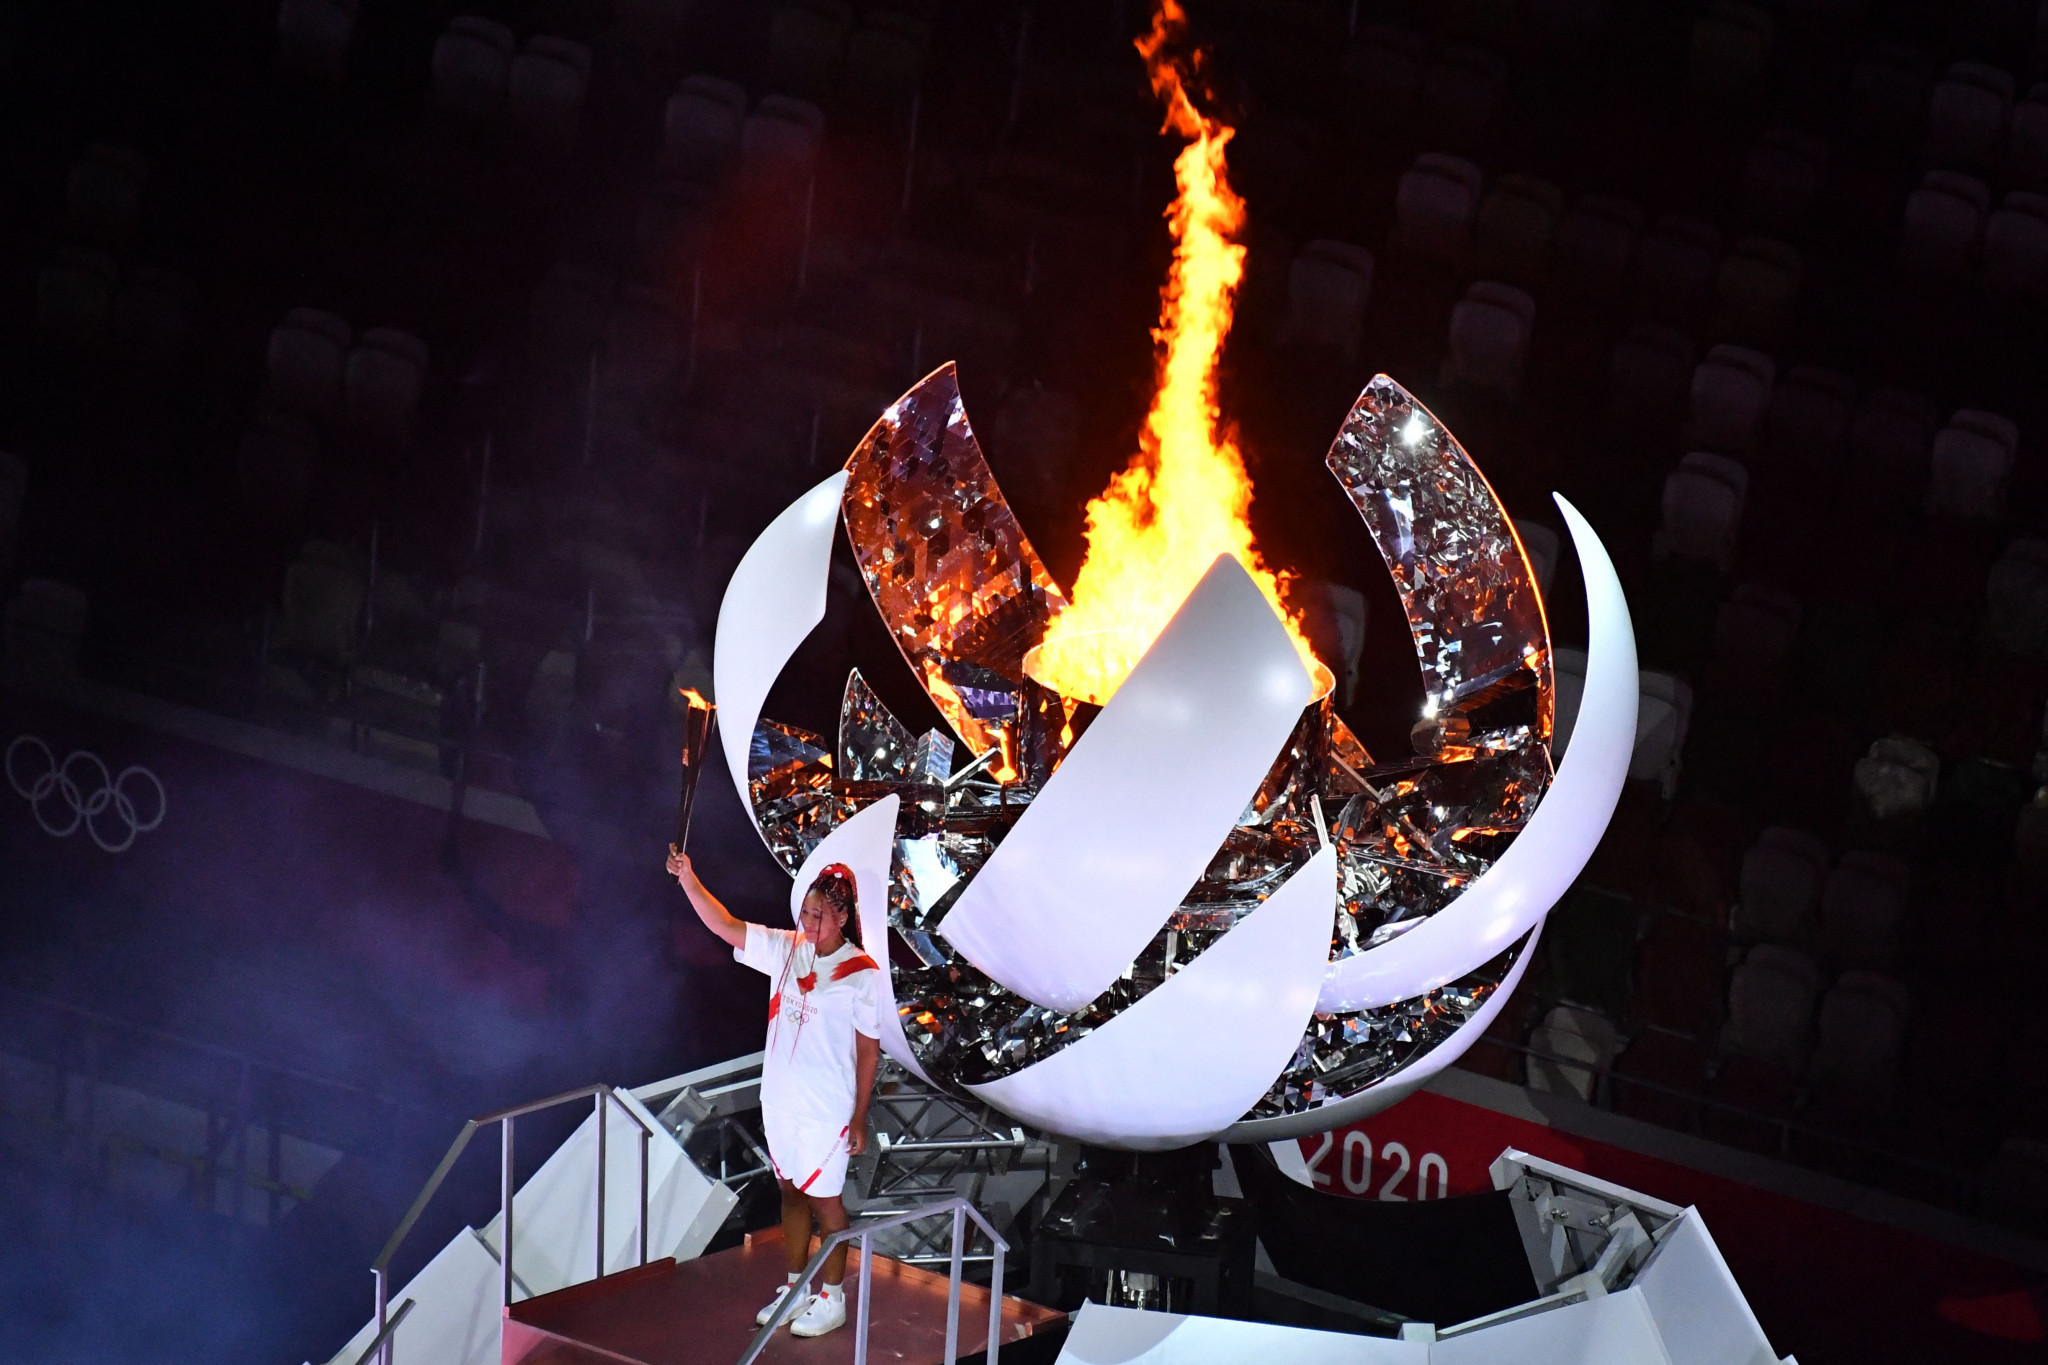 insidethegames is reporting LIVE from the Opening Ceremony of the Tokyo 2020 Olympic Games